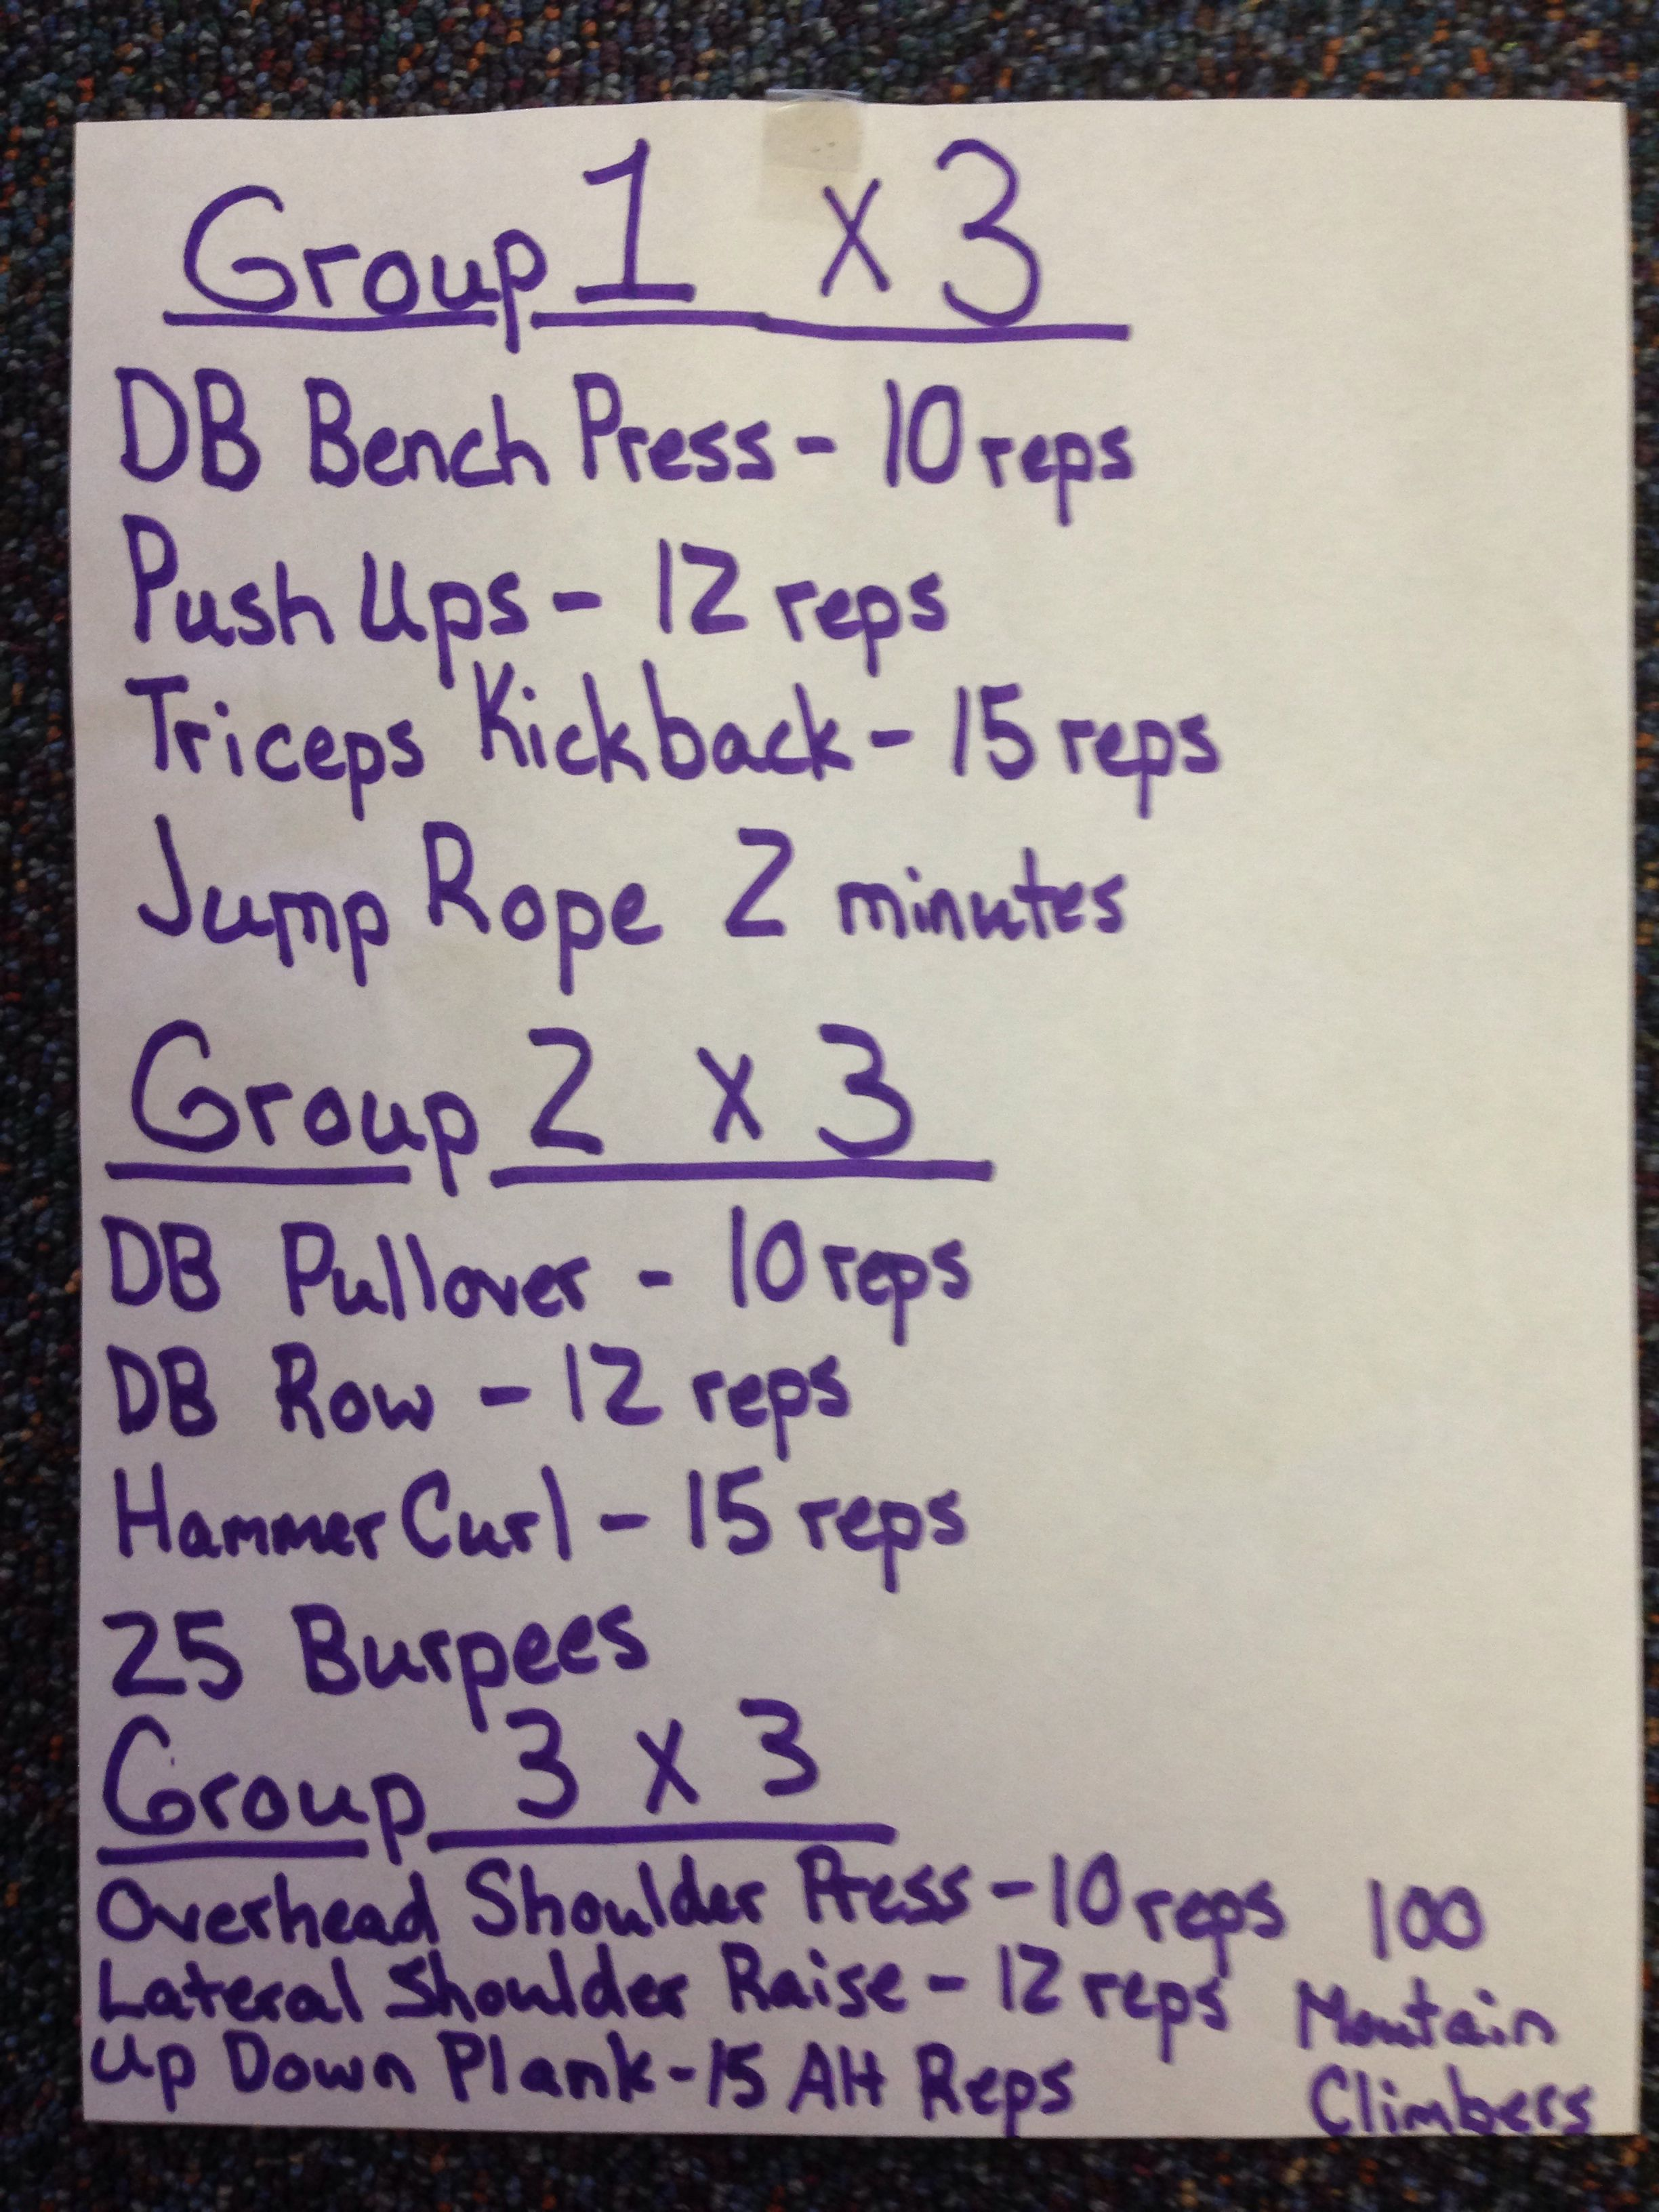 Upper Body Dumbbell Circuit Workout Pinterest Full Dumbell Pictures Photos And Images For